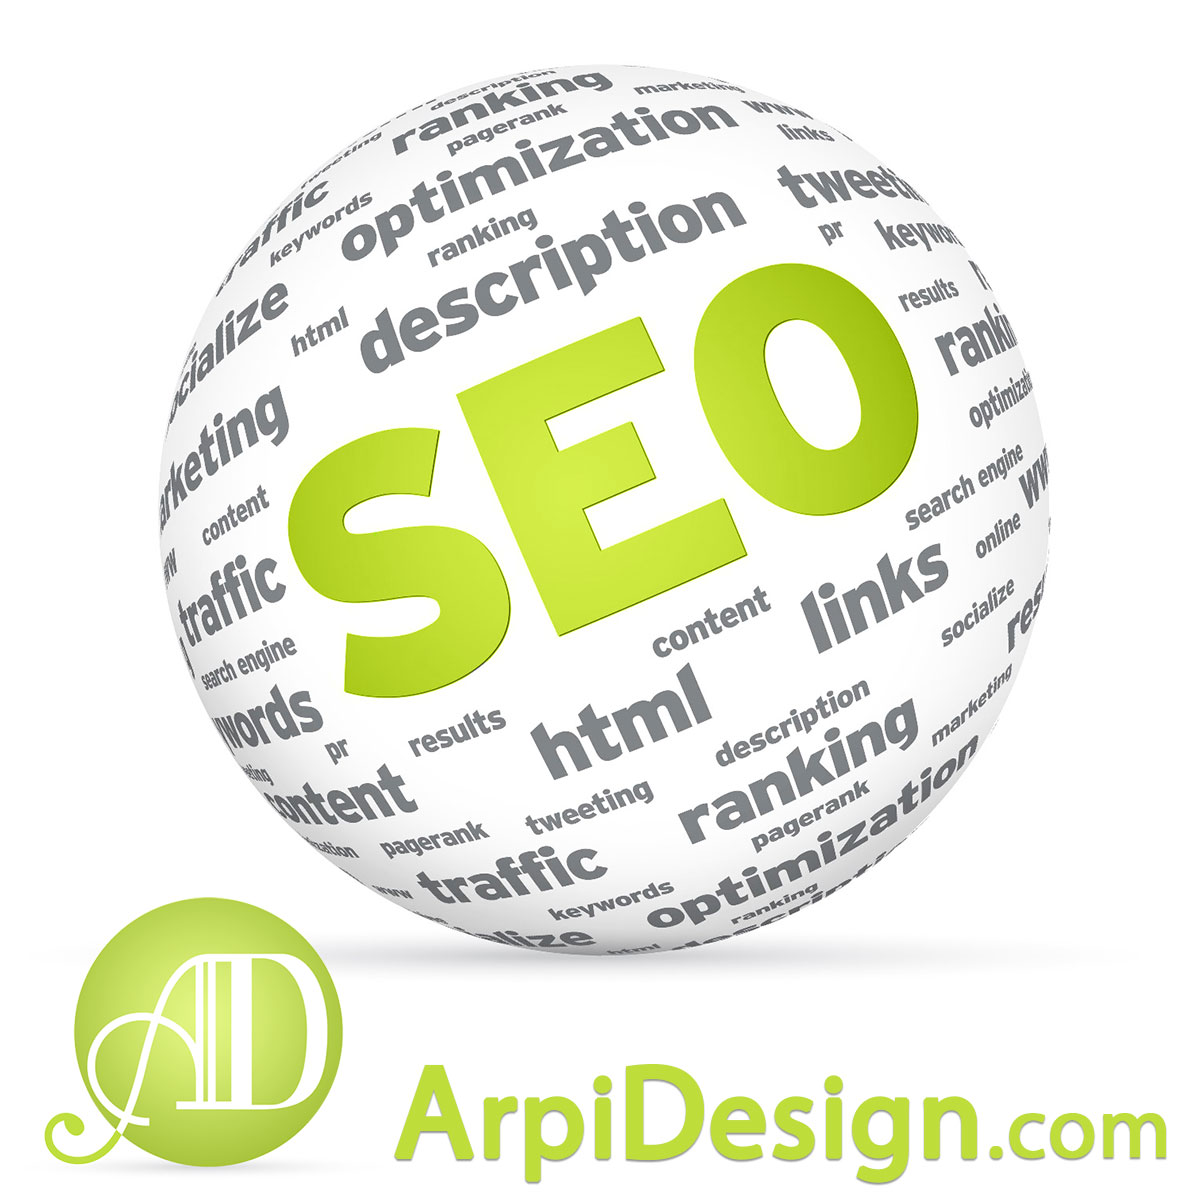 SEO Marketing Company Los Angeles